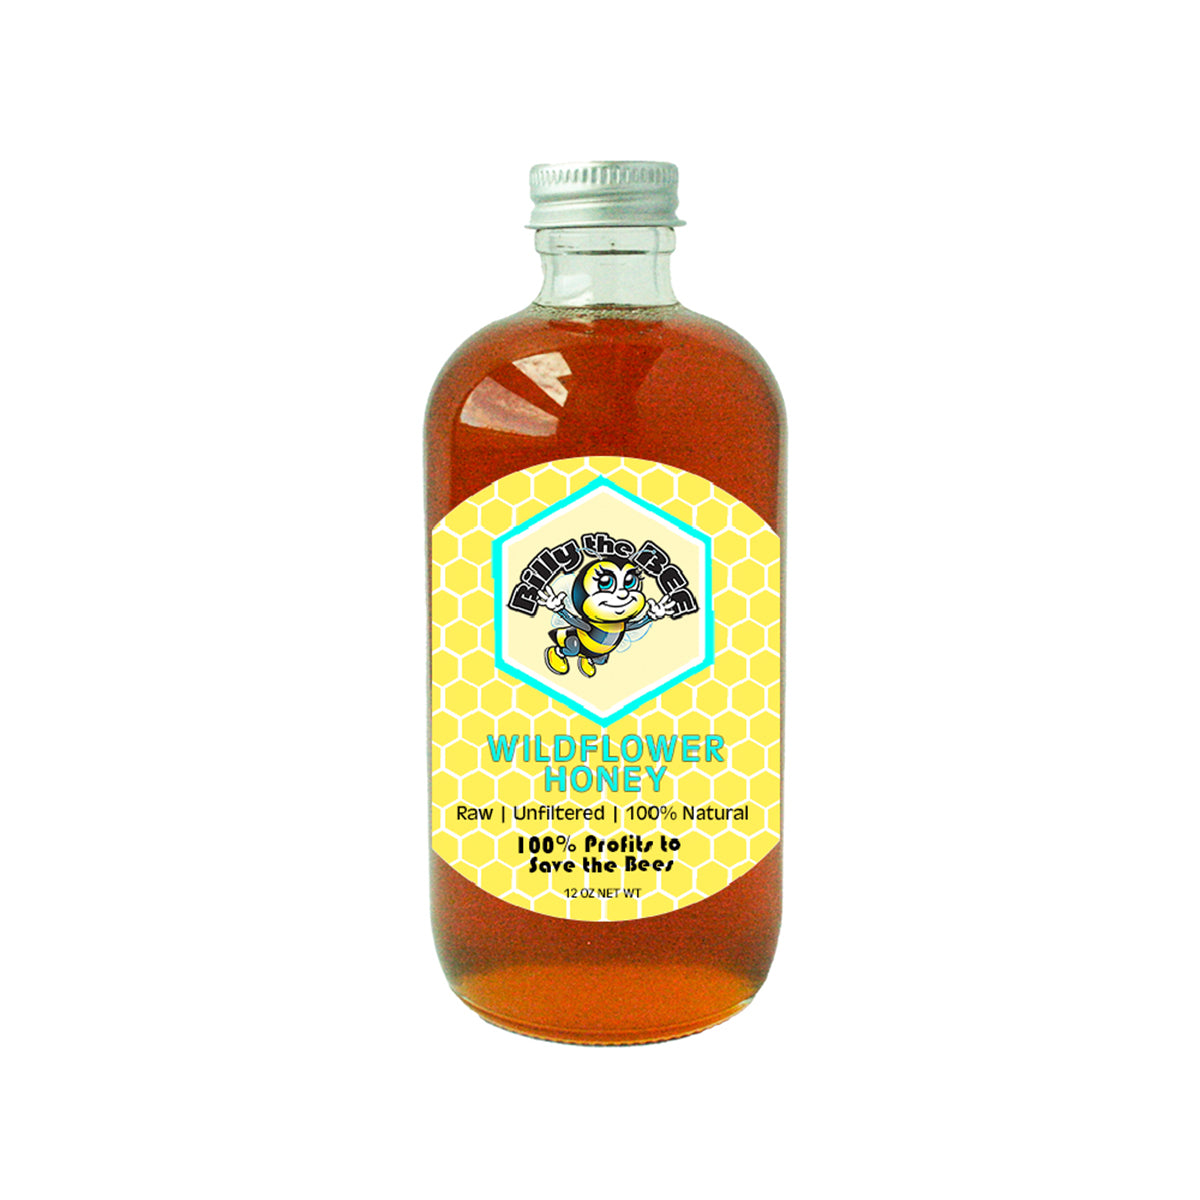 Wildflower Honey from Billy the Bee brand